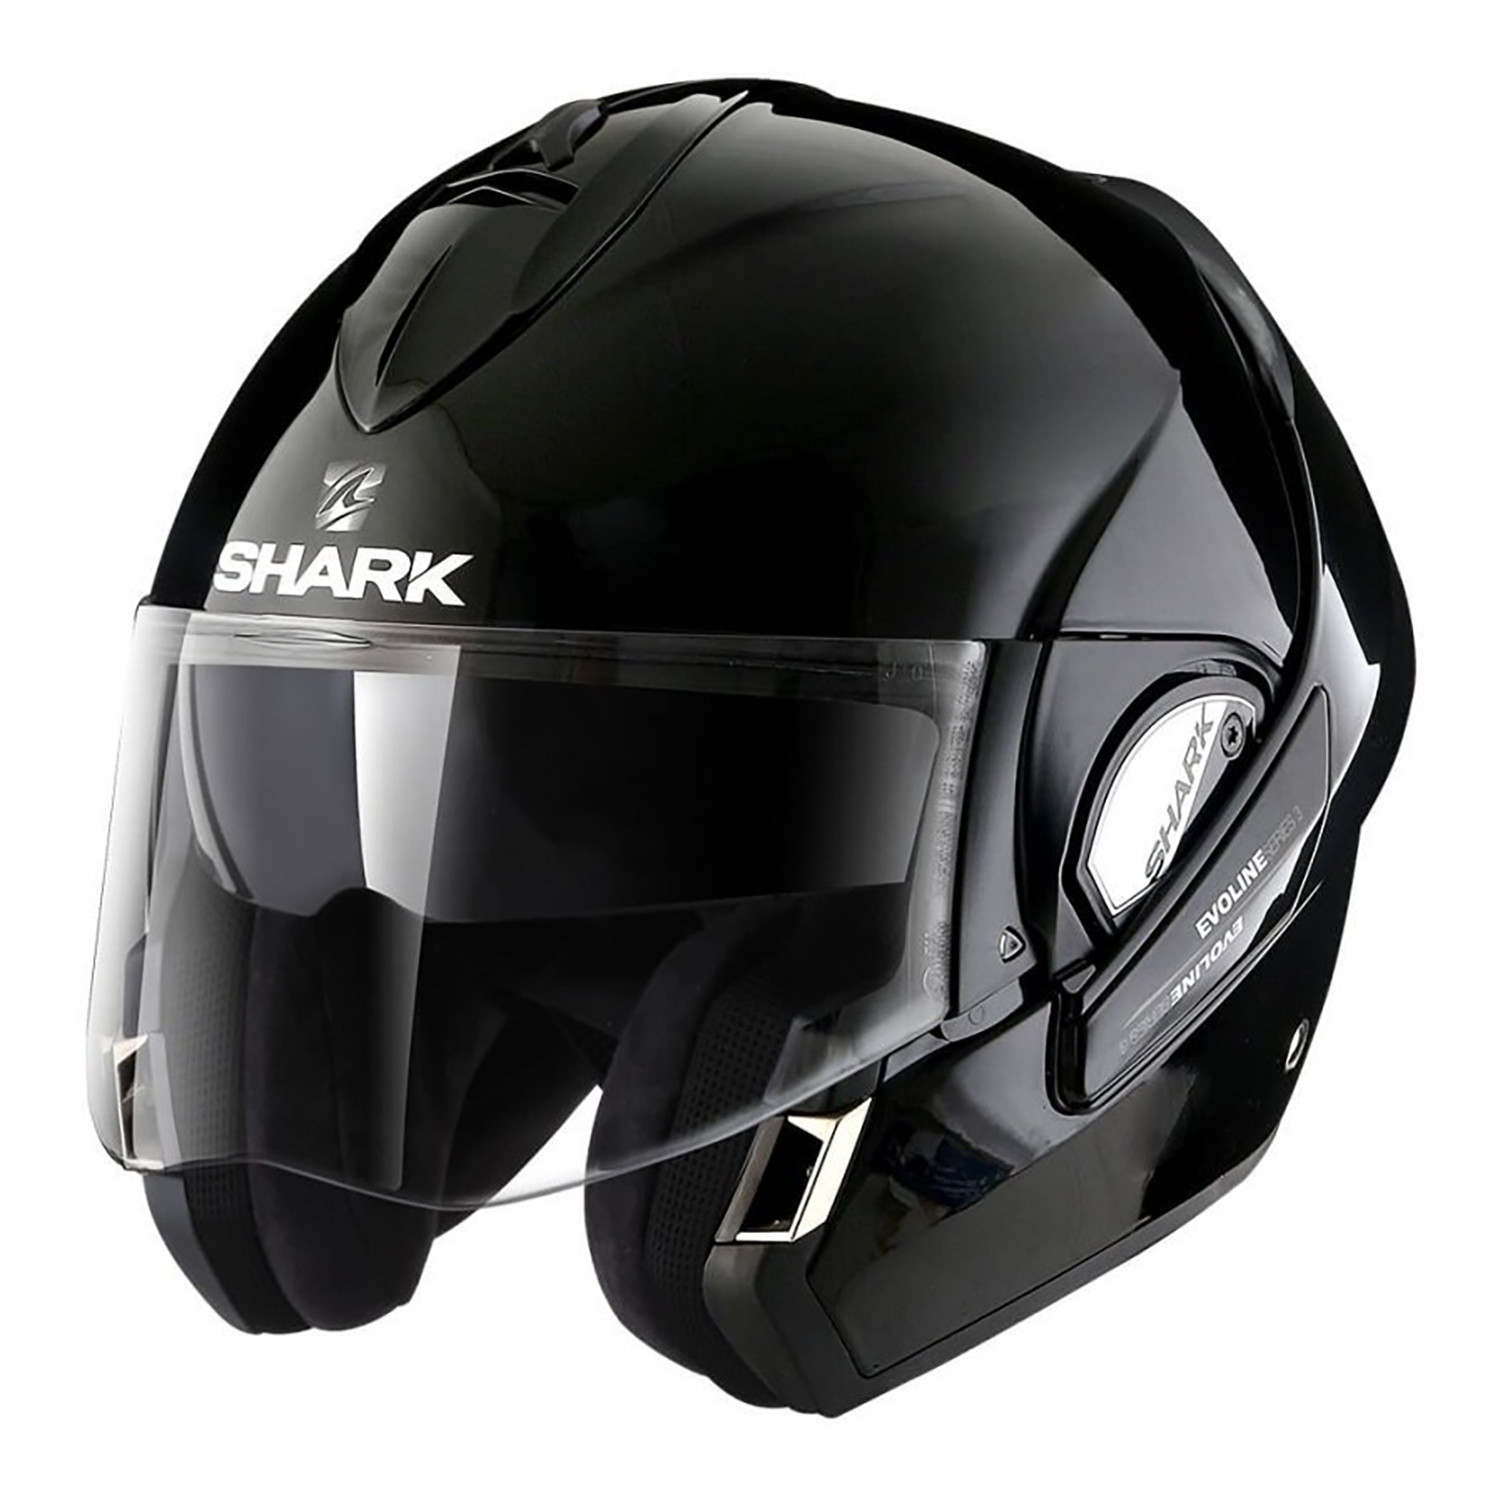 Casco Rebatible Shark Evoline 3 Negro Brillo